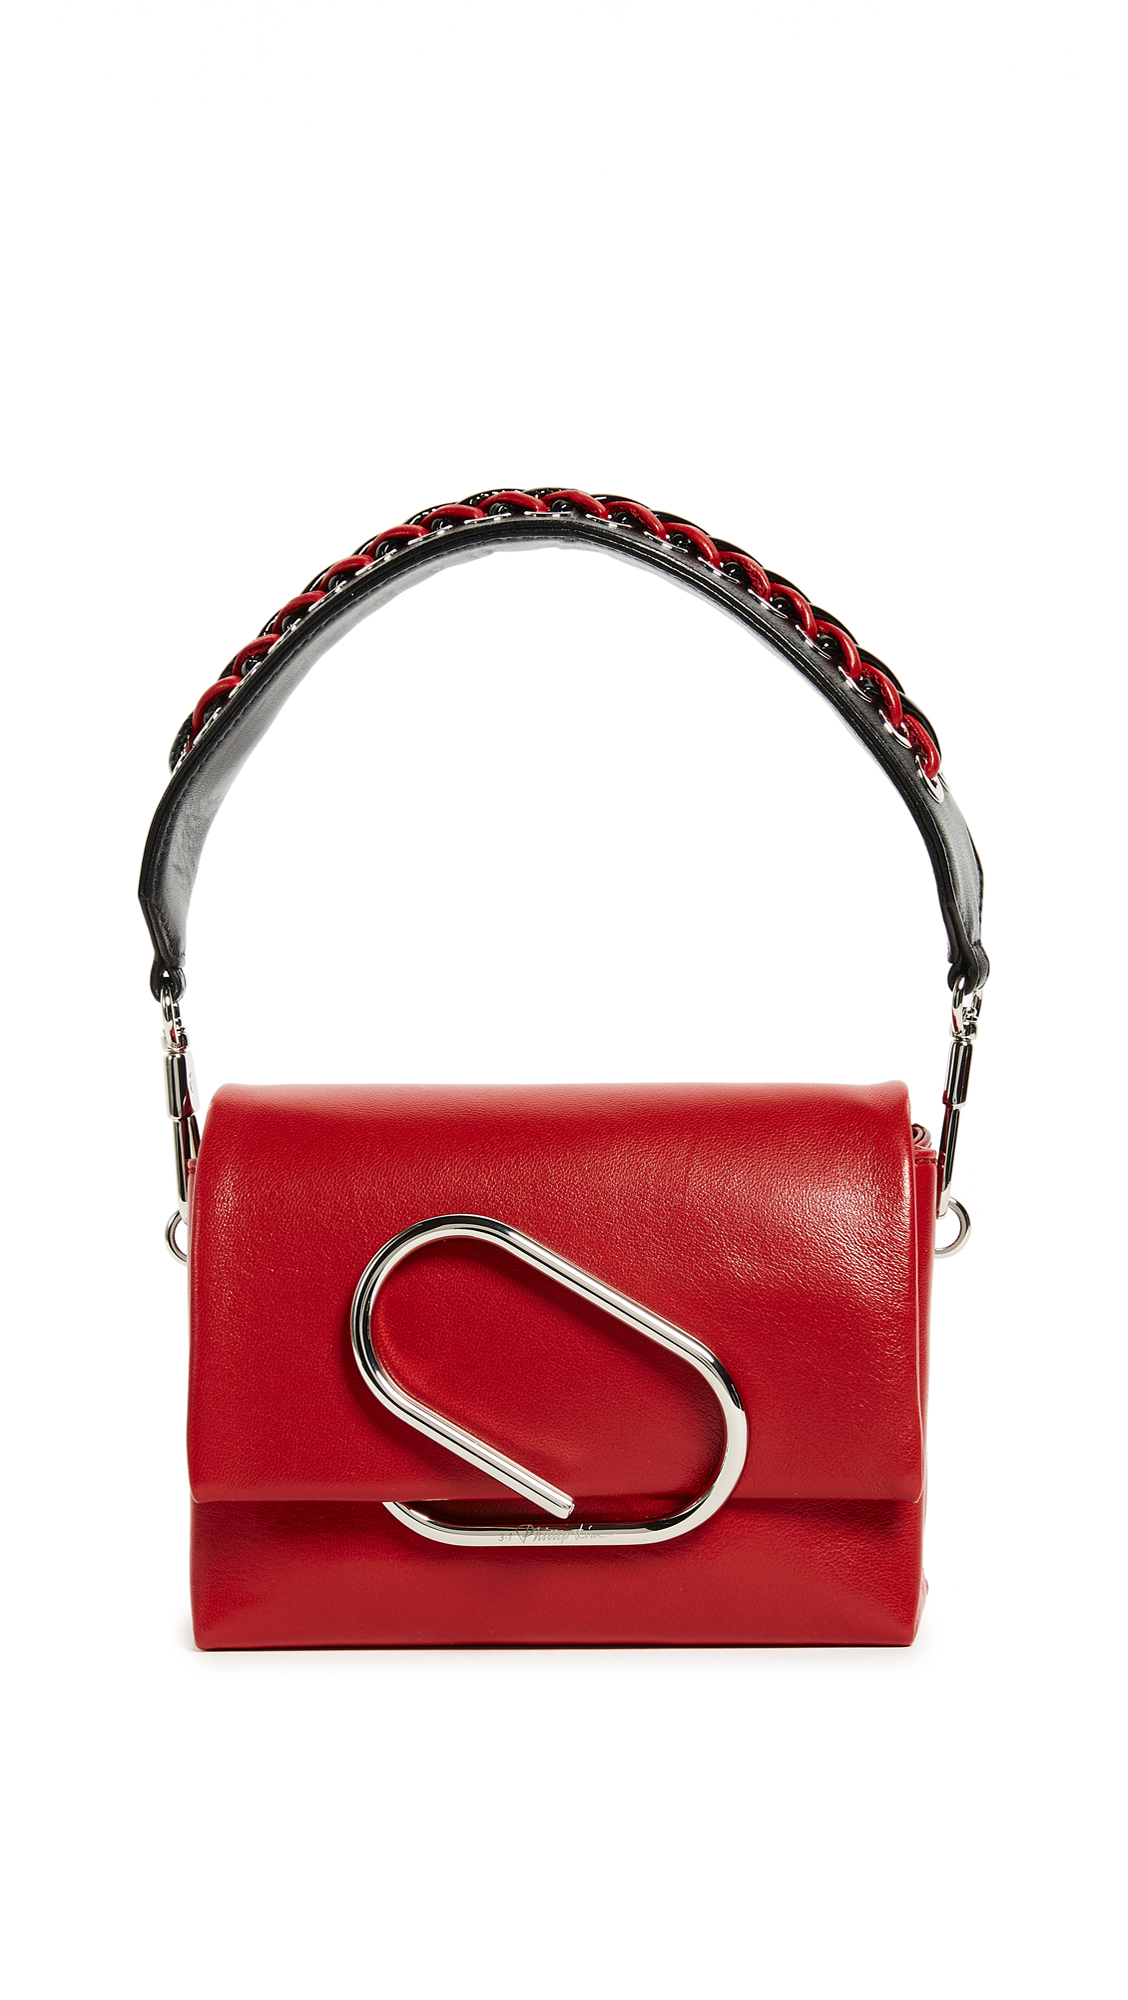 3.1 Phillip Lim Alix Micro Sport Cross Body Bag - Scarlet